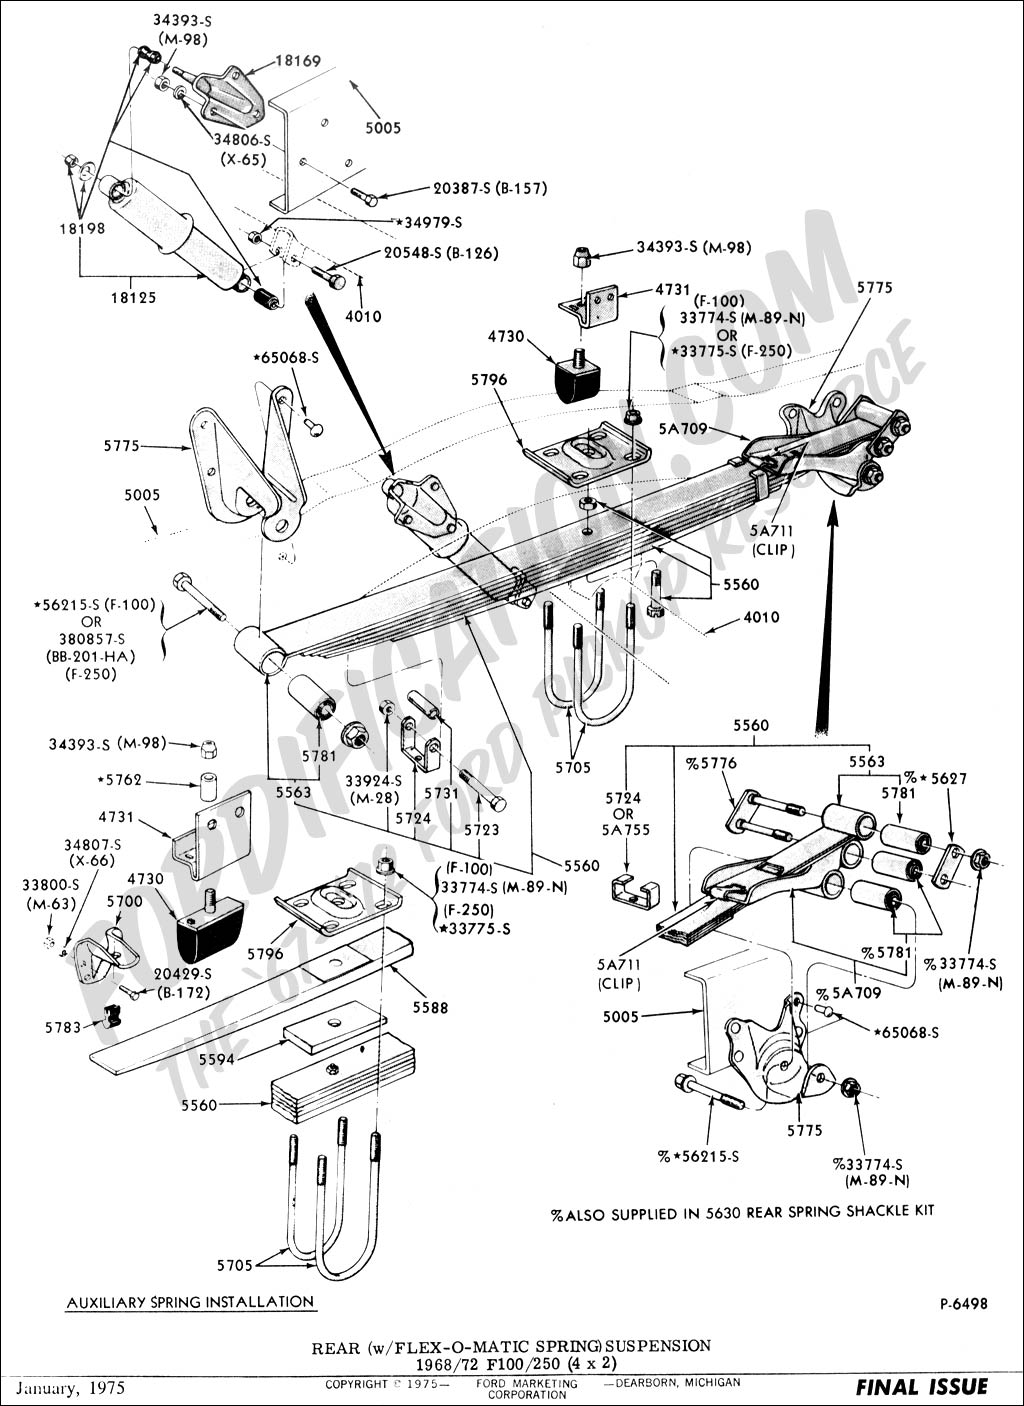 2010 F250 Front End Parts Diagram on Ford F 250 Front End Suspension Diagram